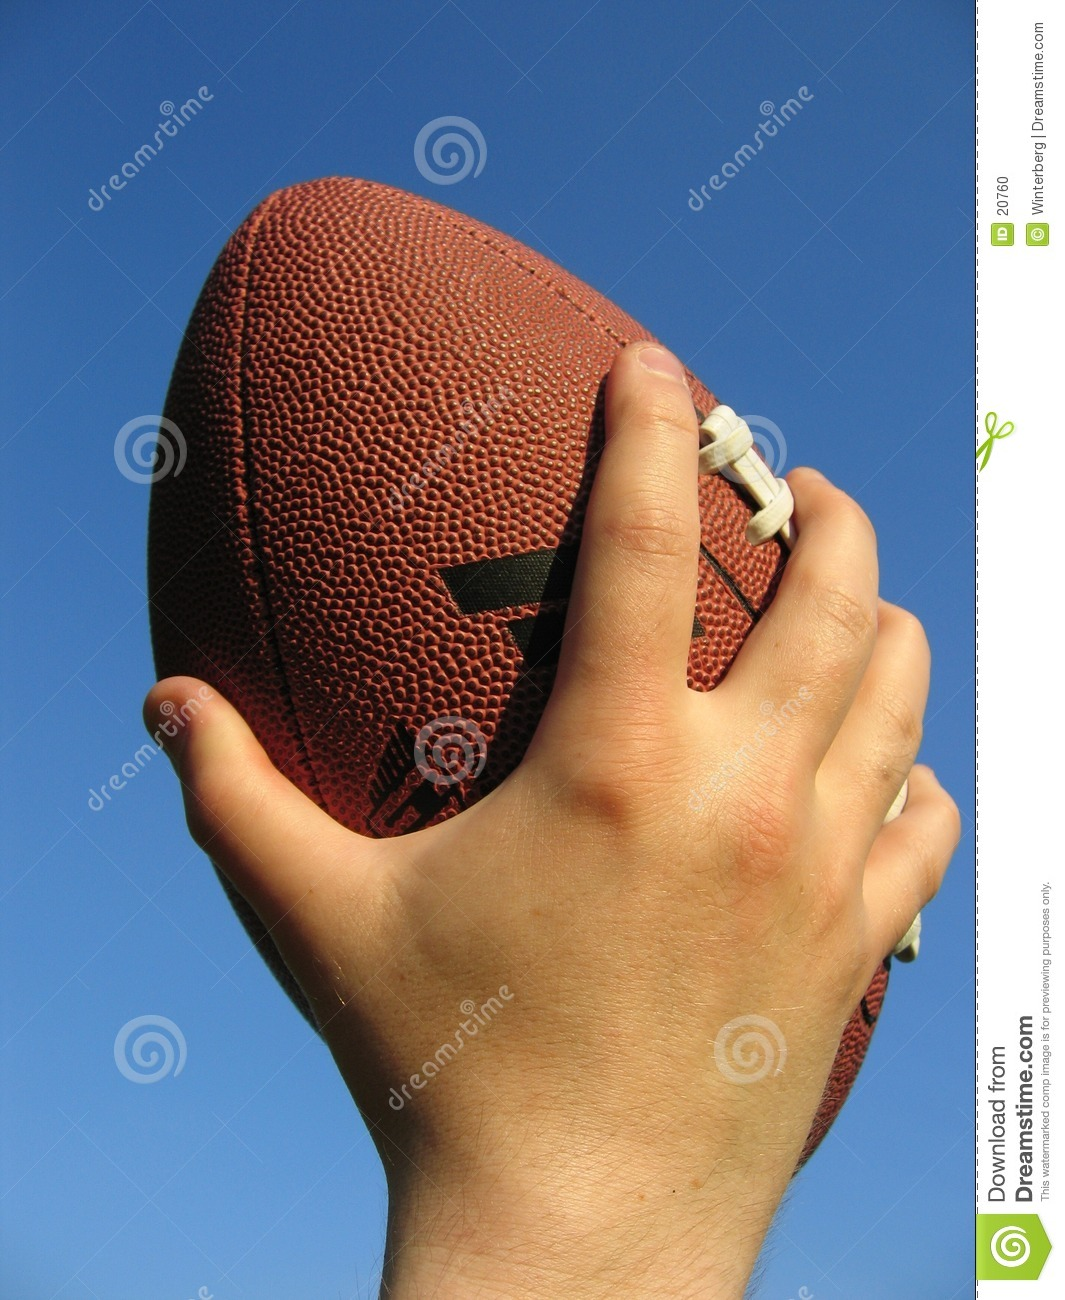 football in hand stock photo image 20760